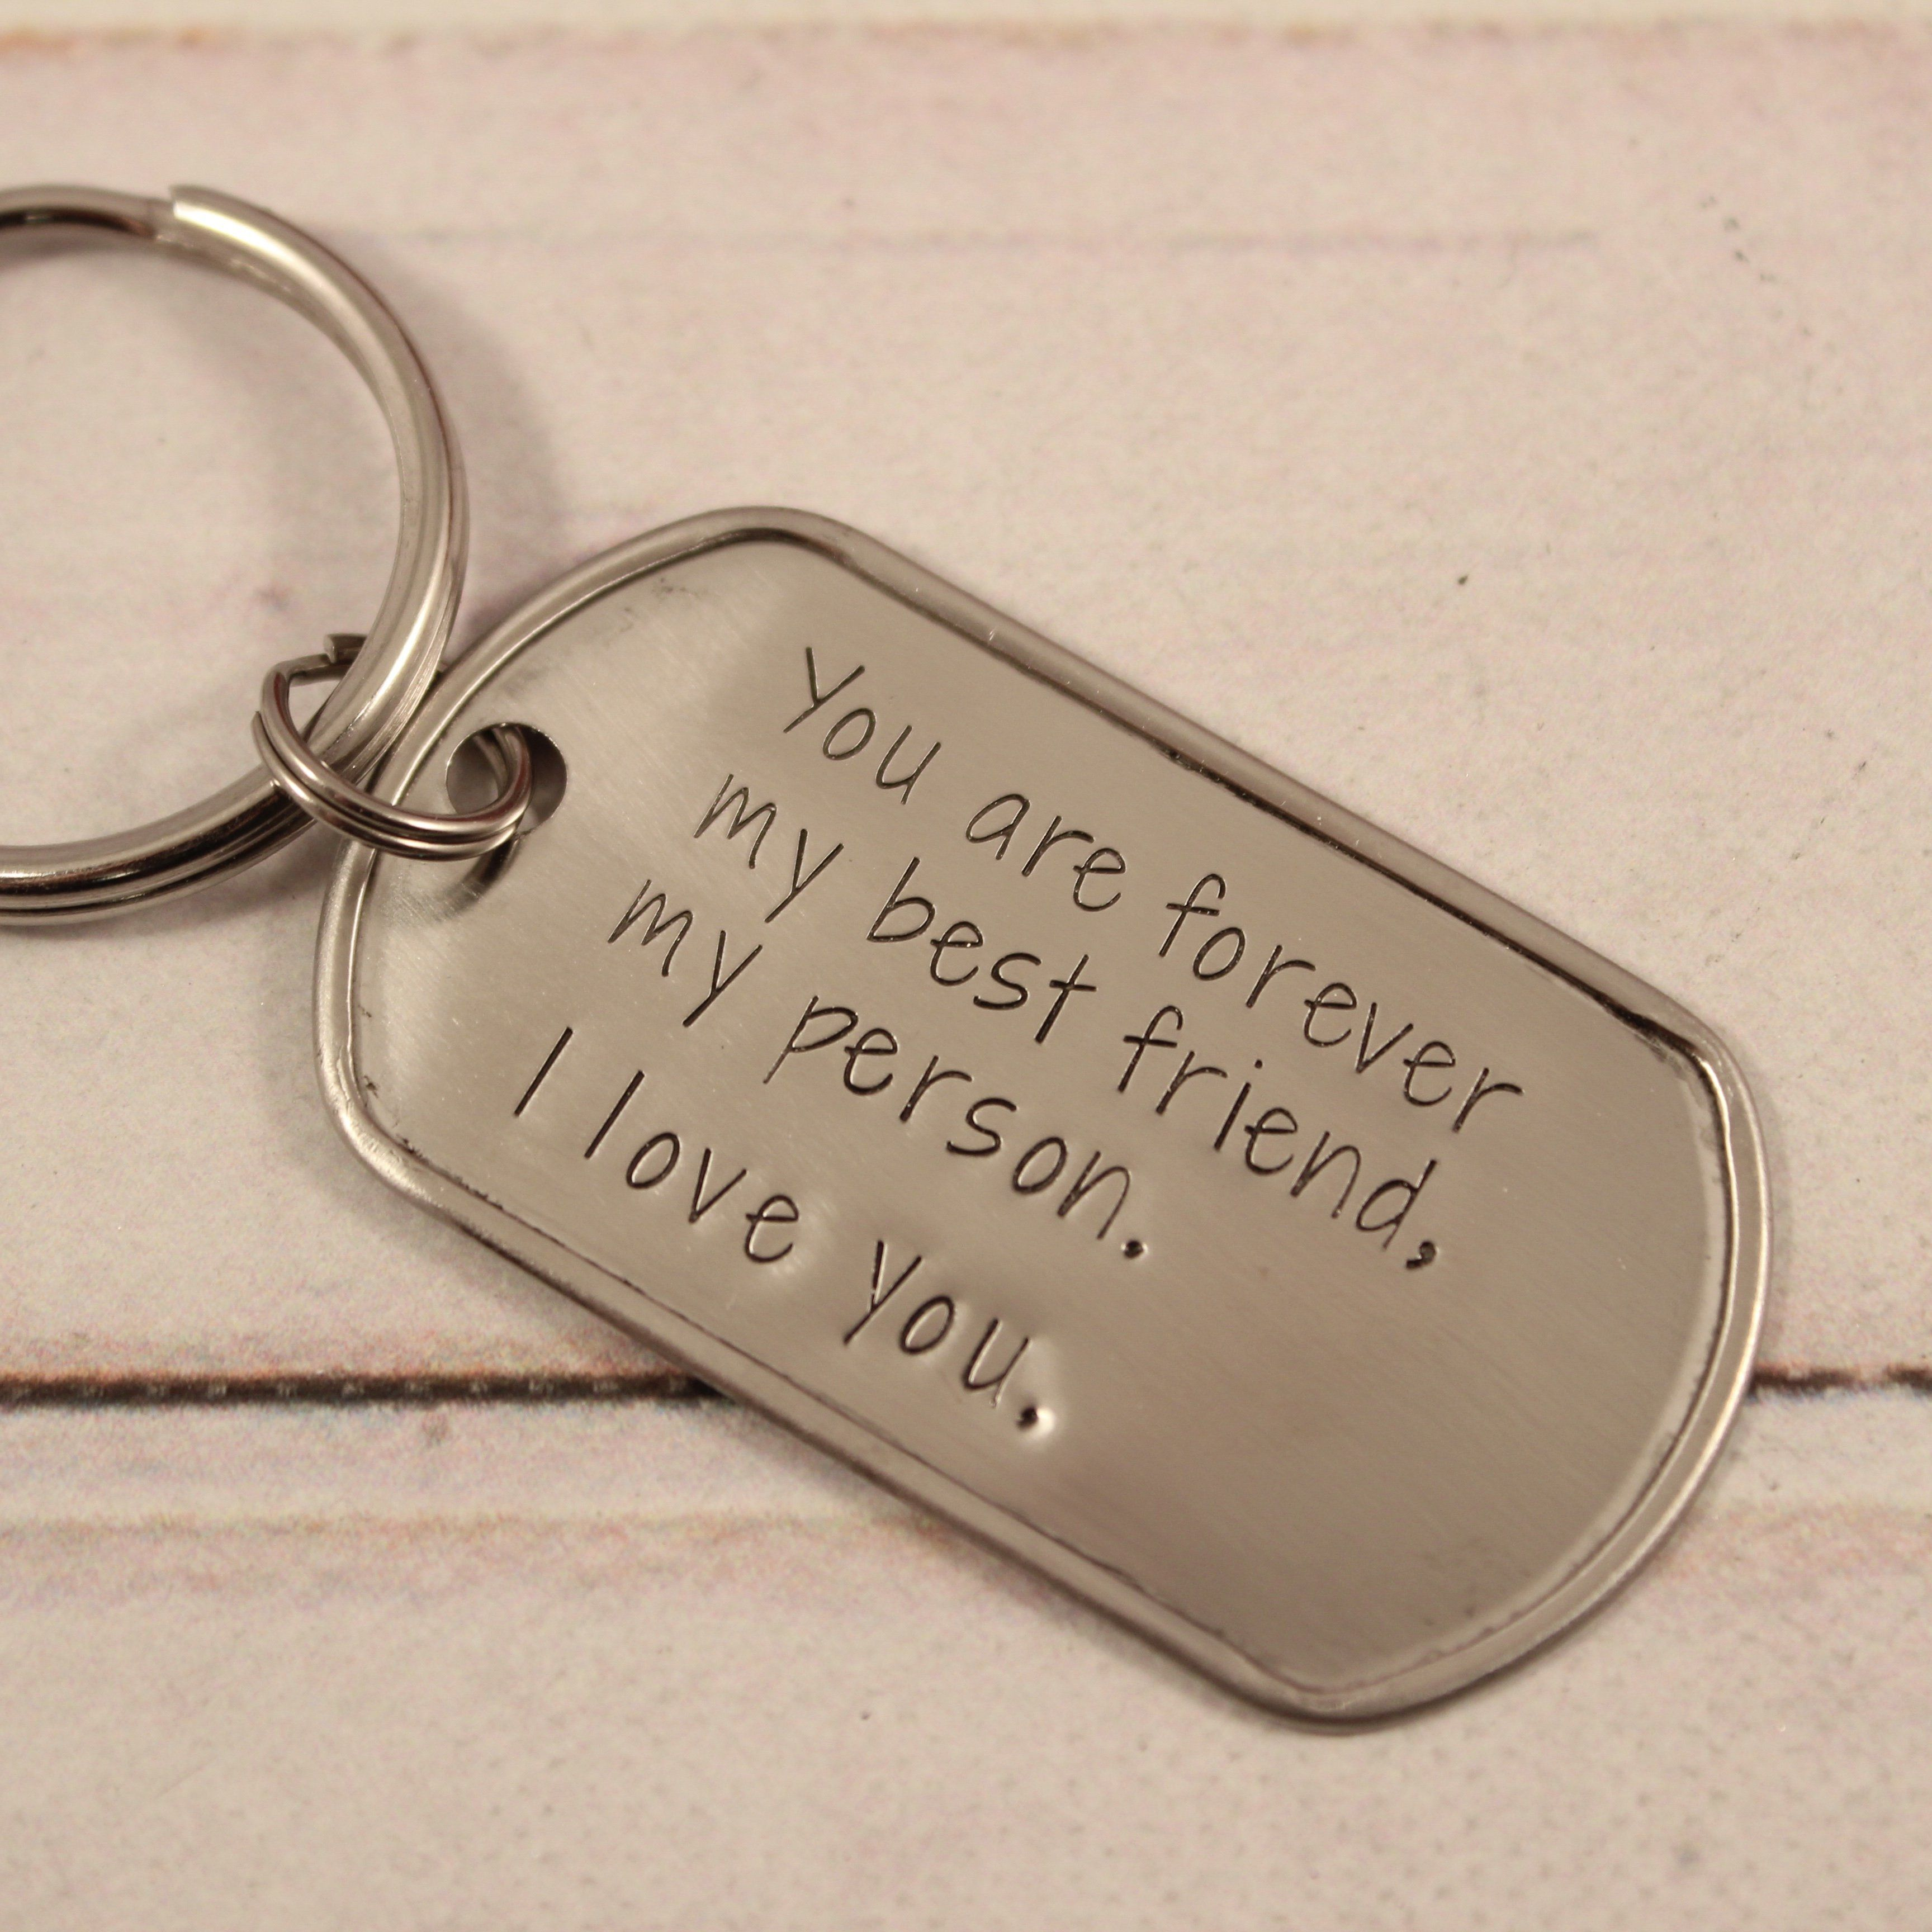 Personalized Dog Tag Necklace Keychain Dog Tags Diy Gifts